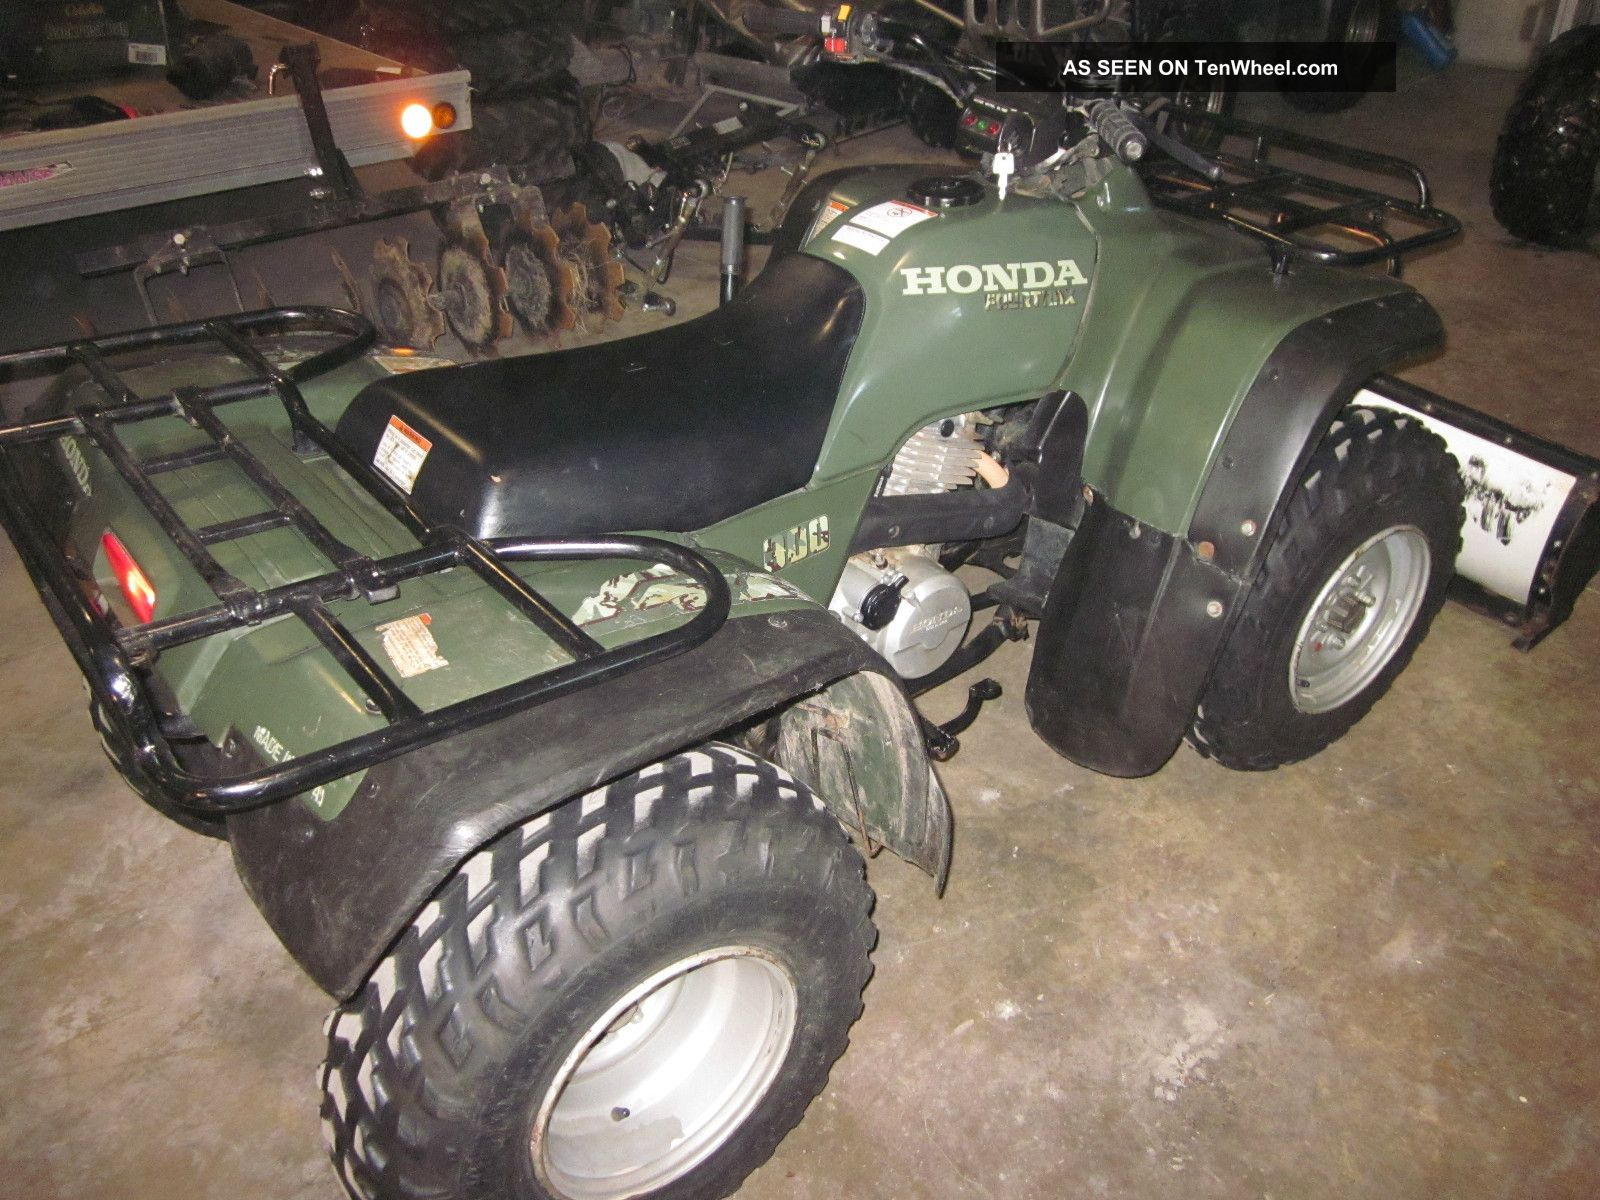 1990 honda fourtrax 300 wiring diagram 99 accord fuse 1985 schematic best library for 2001 350 4 wheeler free 250r